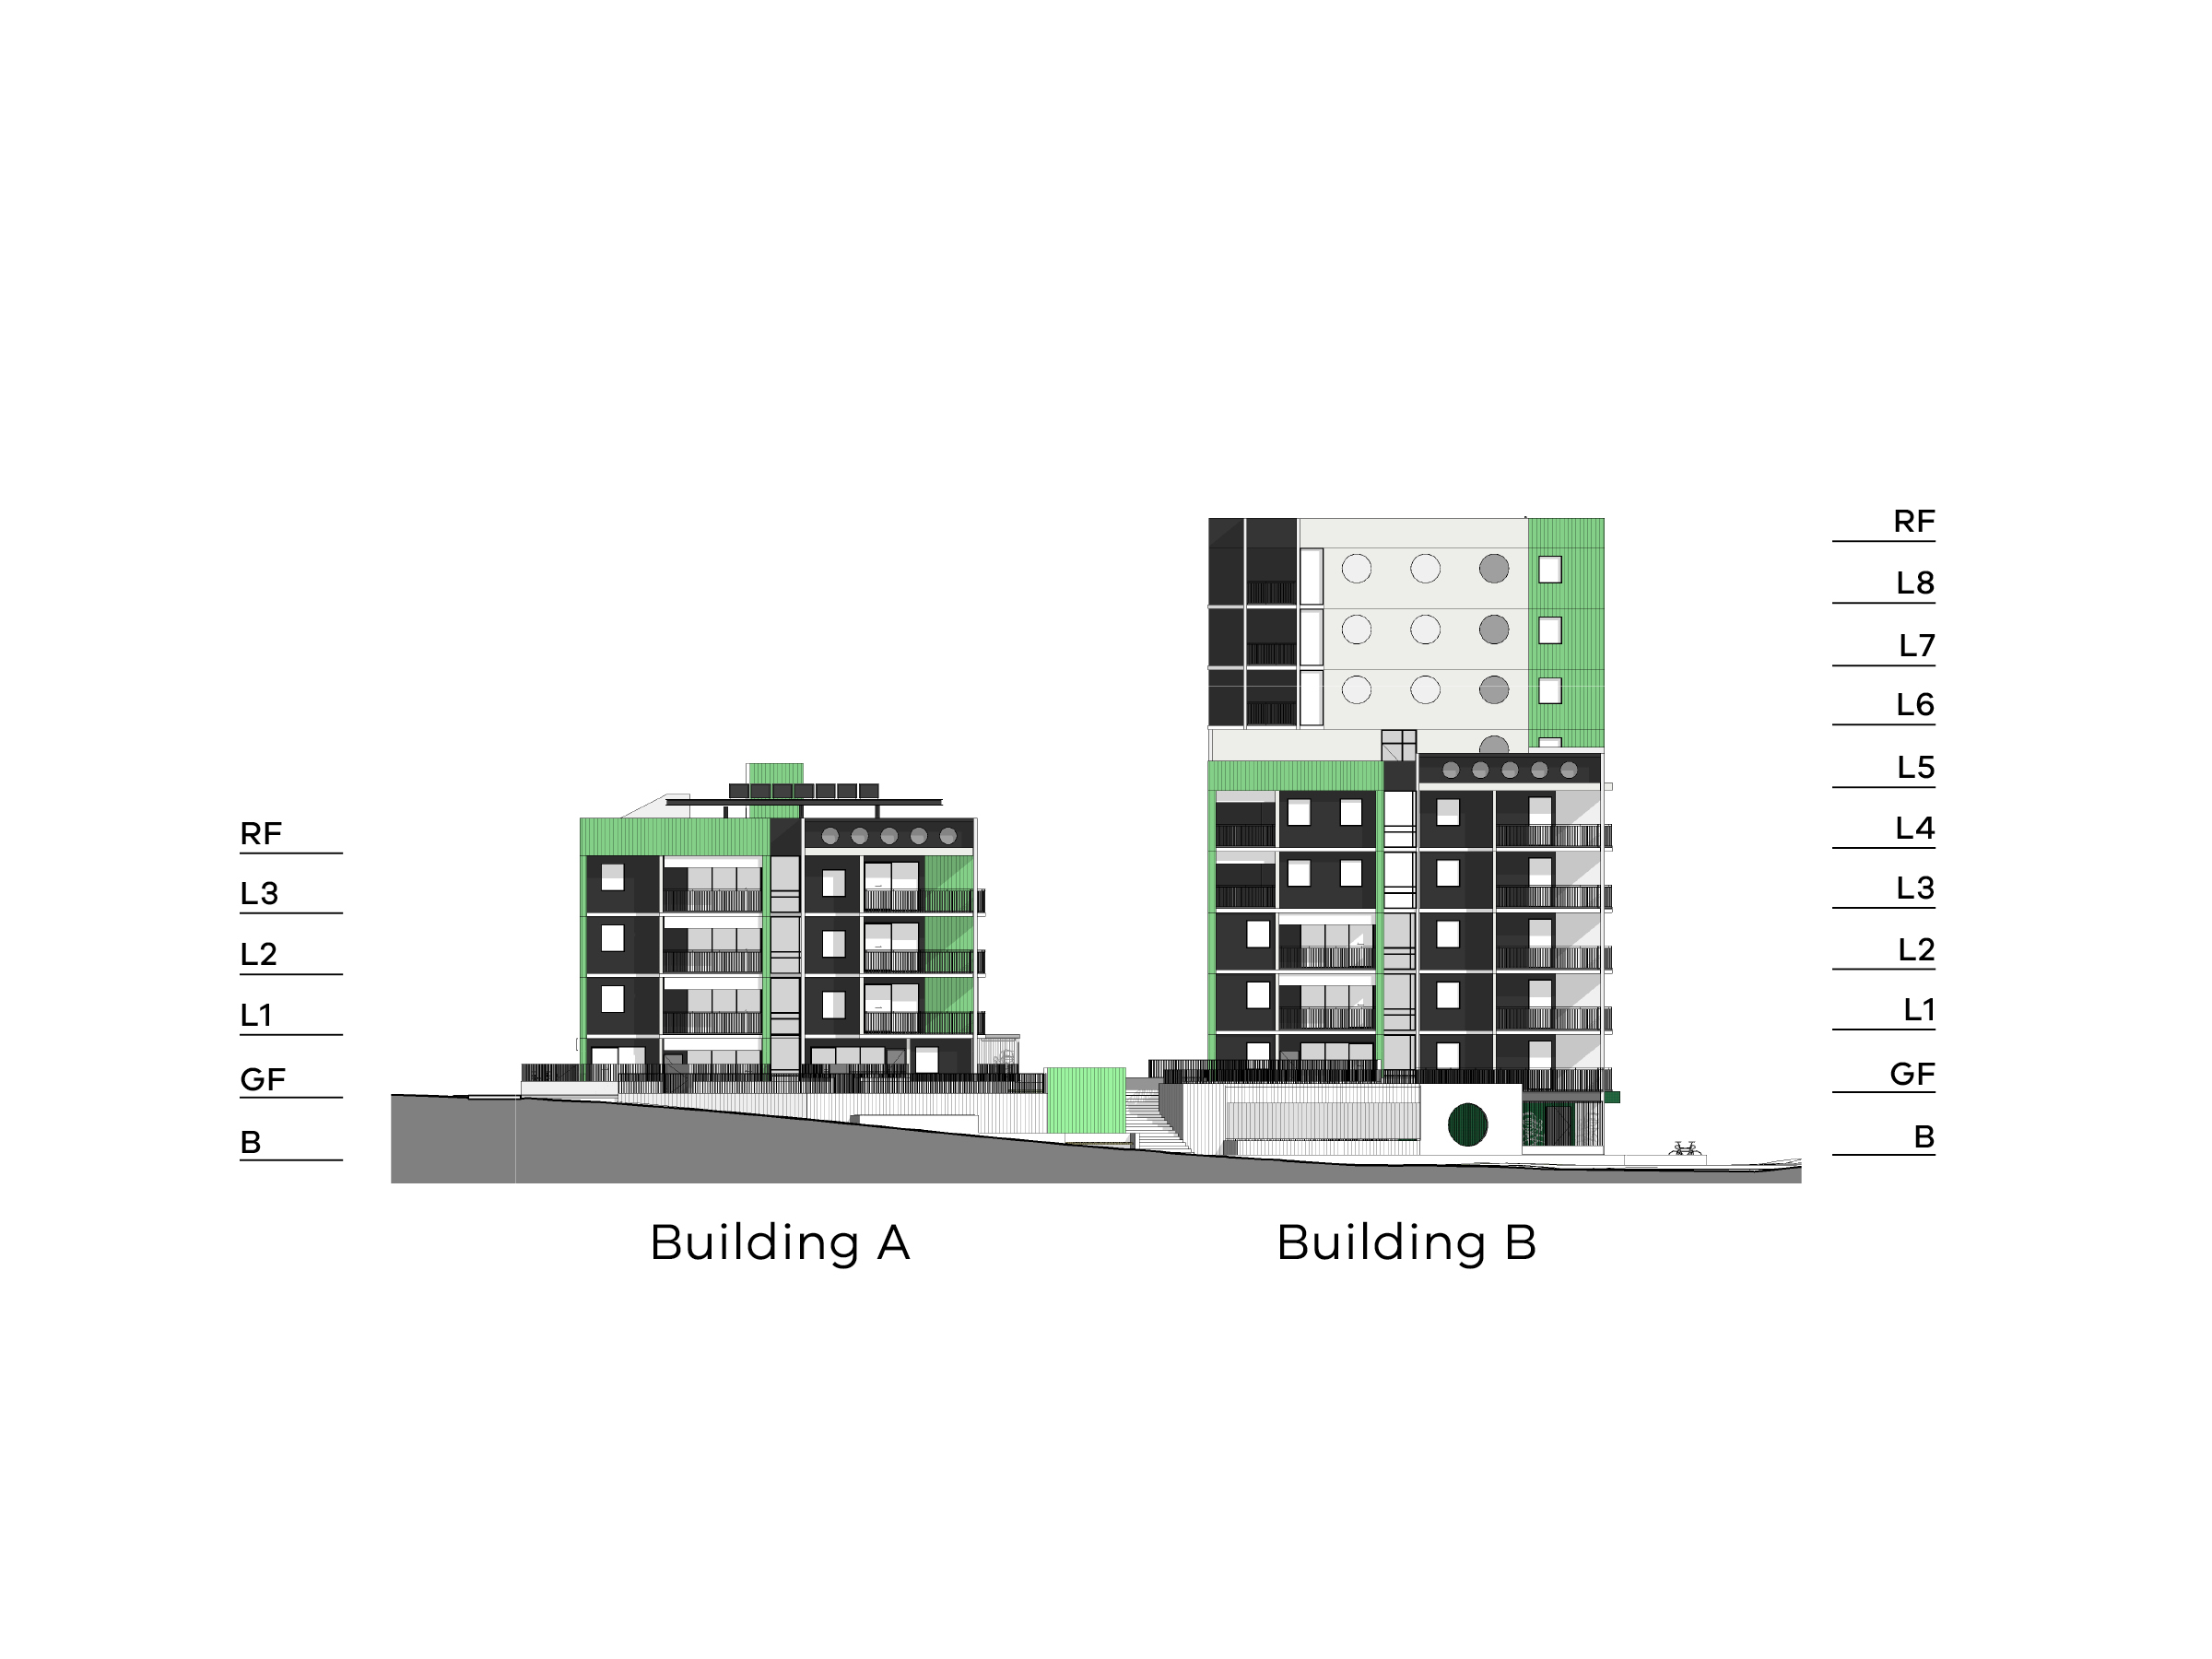 Diagram showing the heights of buildings A and B as seen from Hill Street. Building A has a basement, ground floor, level 1-3 and a flat roof. Building B has a basement, ground floor, level 1-8 and a roof.